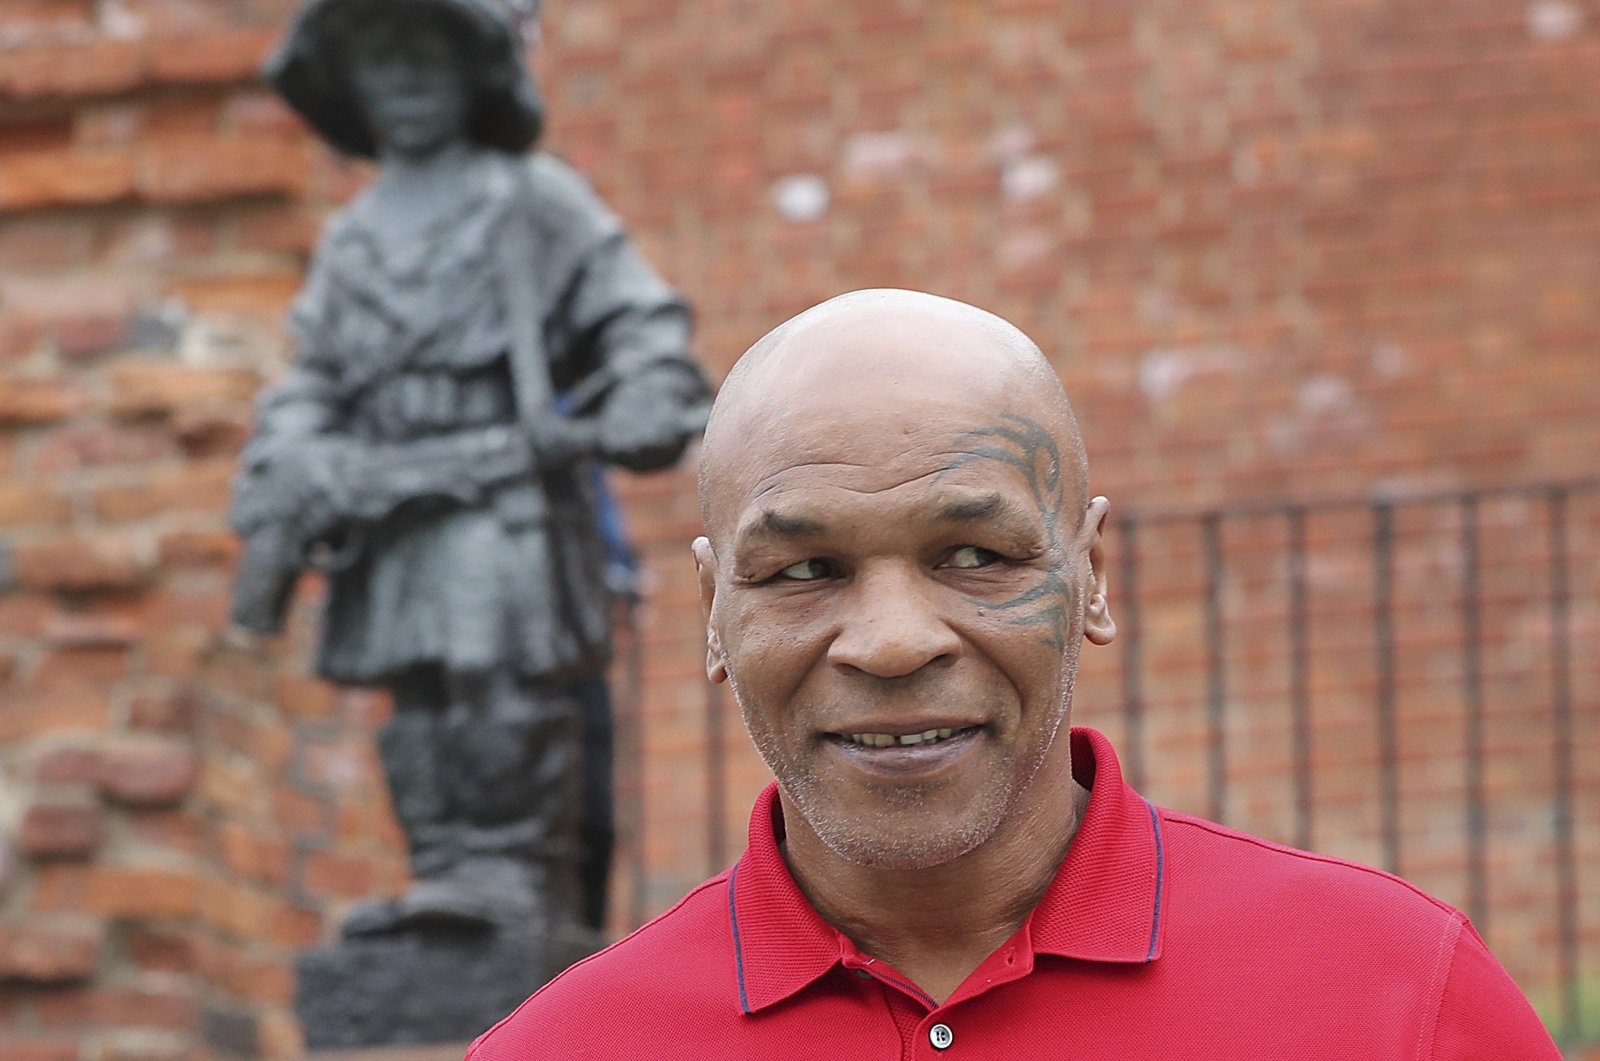 Mike Tyson stands in front of a memorial to Polish suffering during World War II, during a visit to Warsaw, Poland, June 27, 2019. (AP Photo)